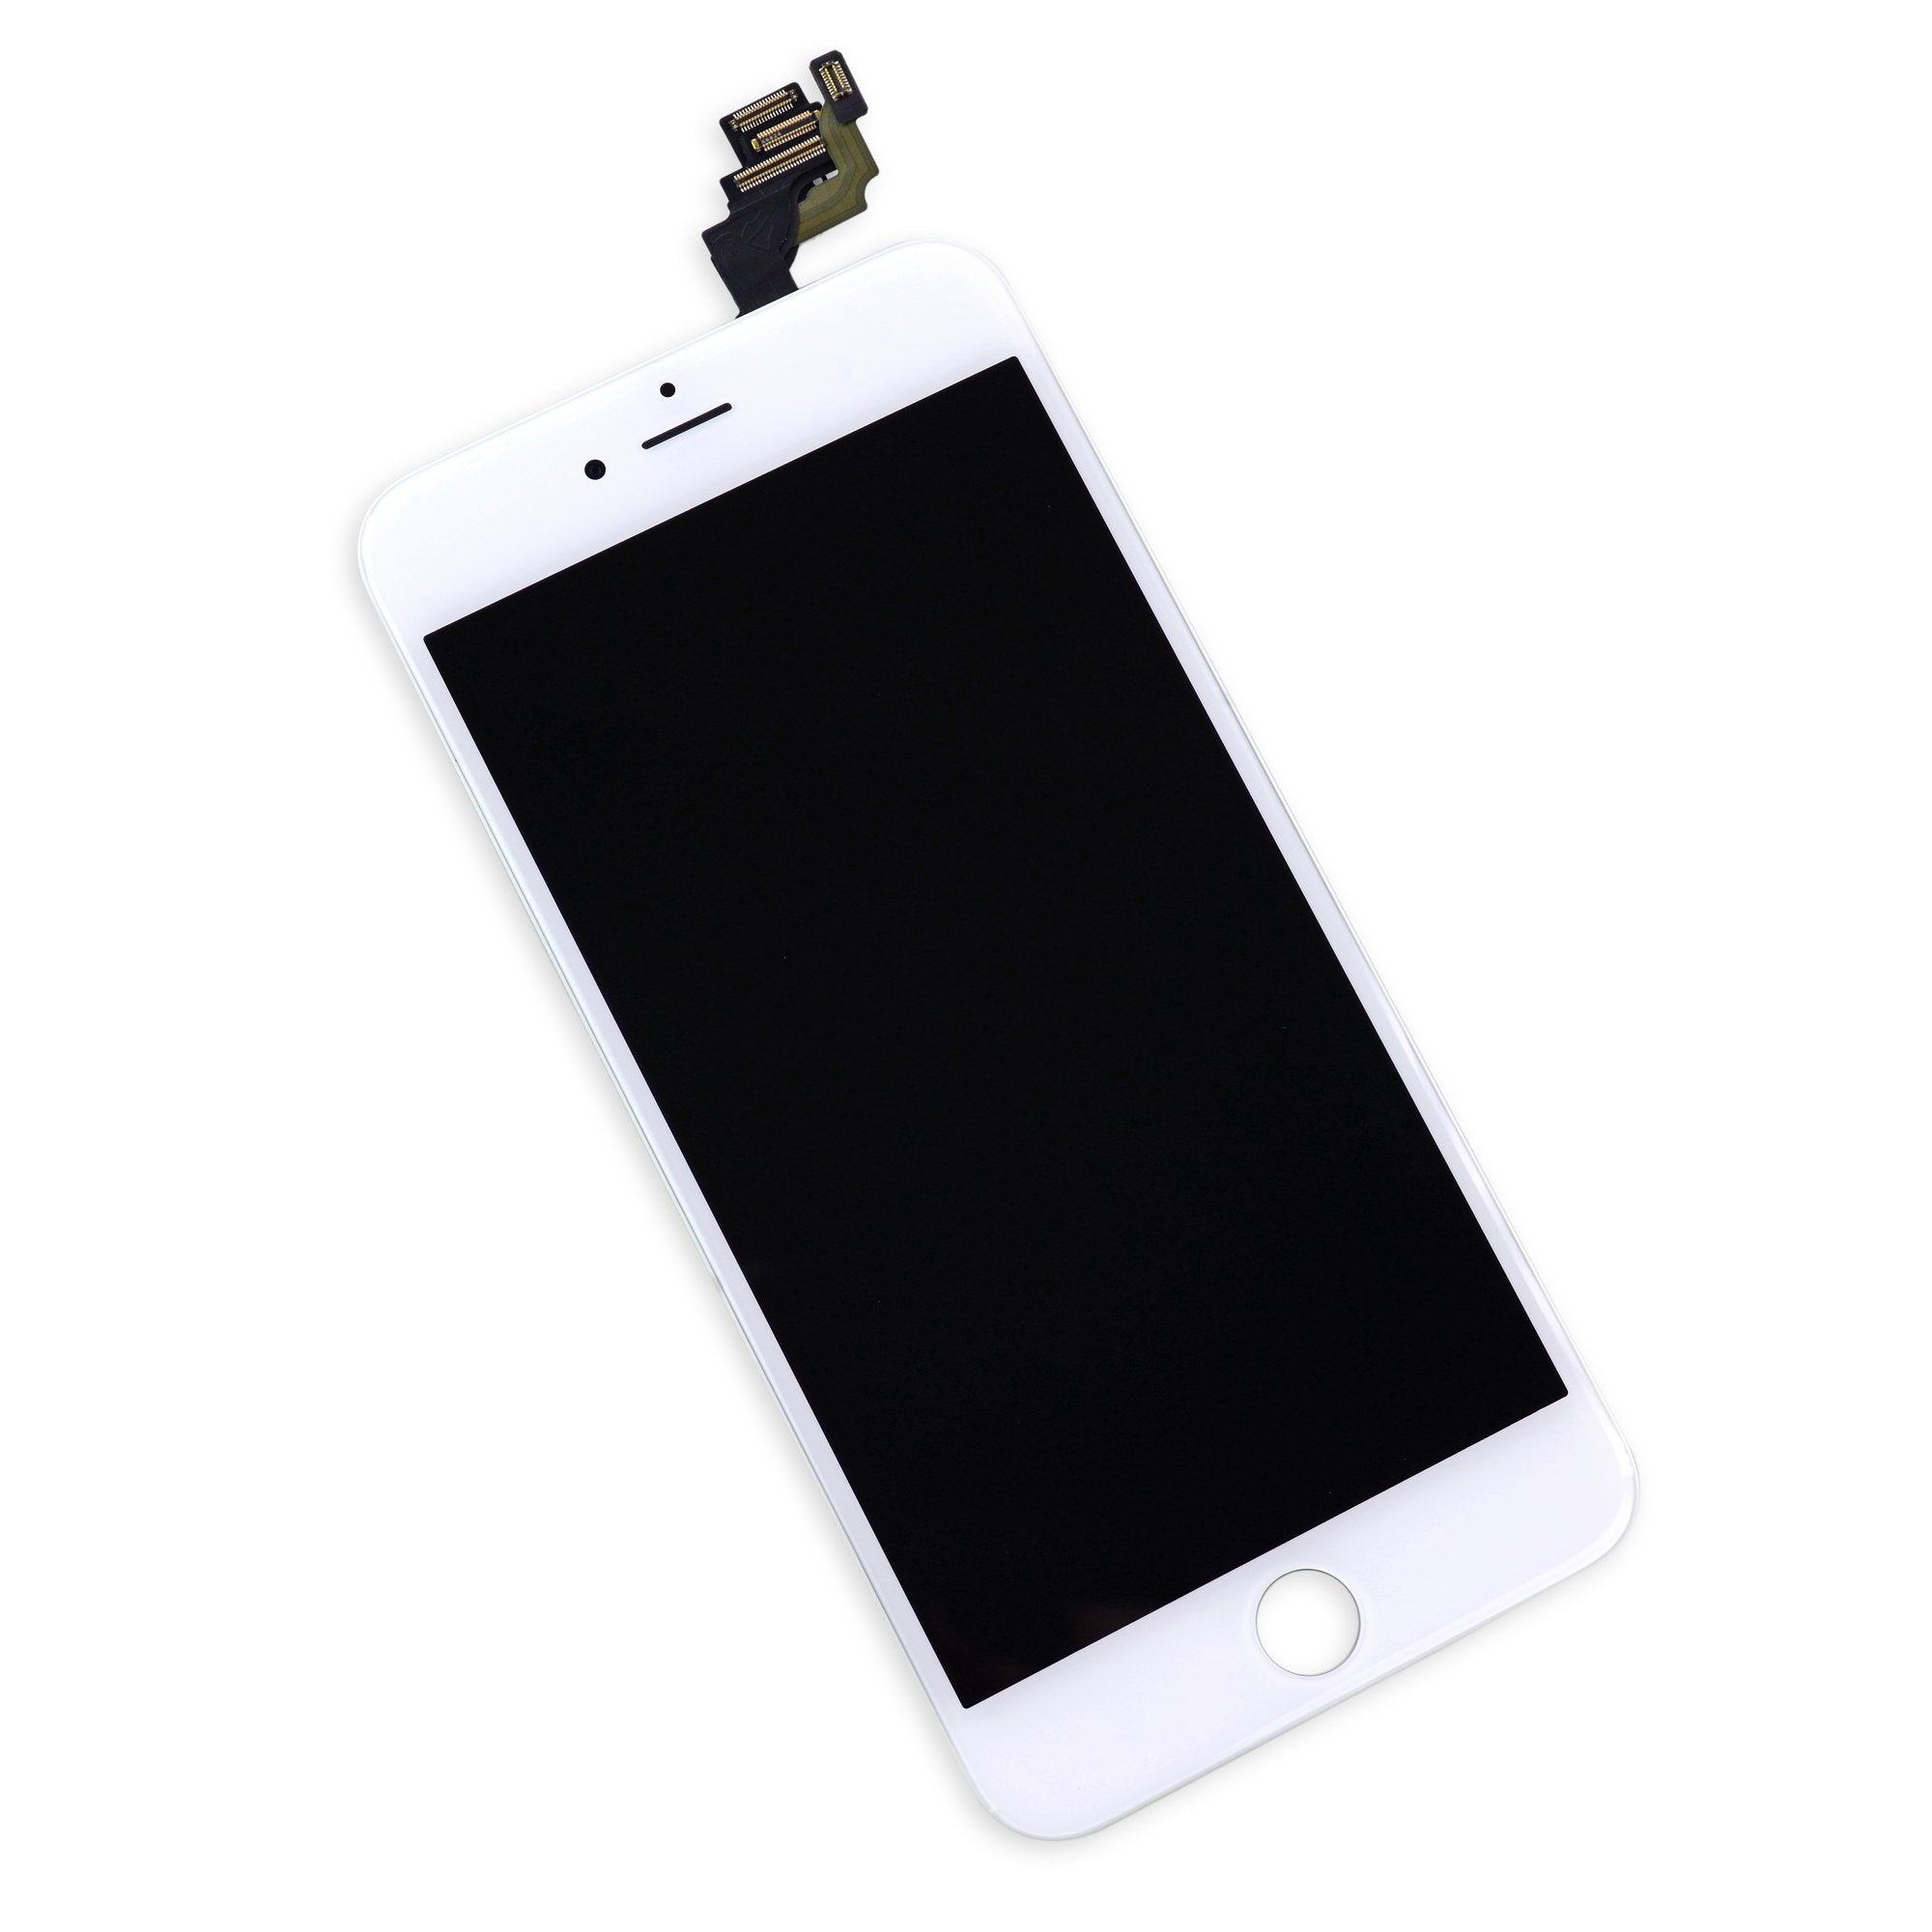 iPhone 6 Plus LCD Screen and Digitizer Full Assembly